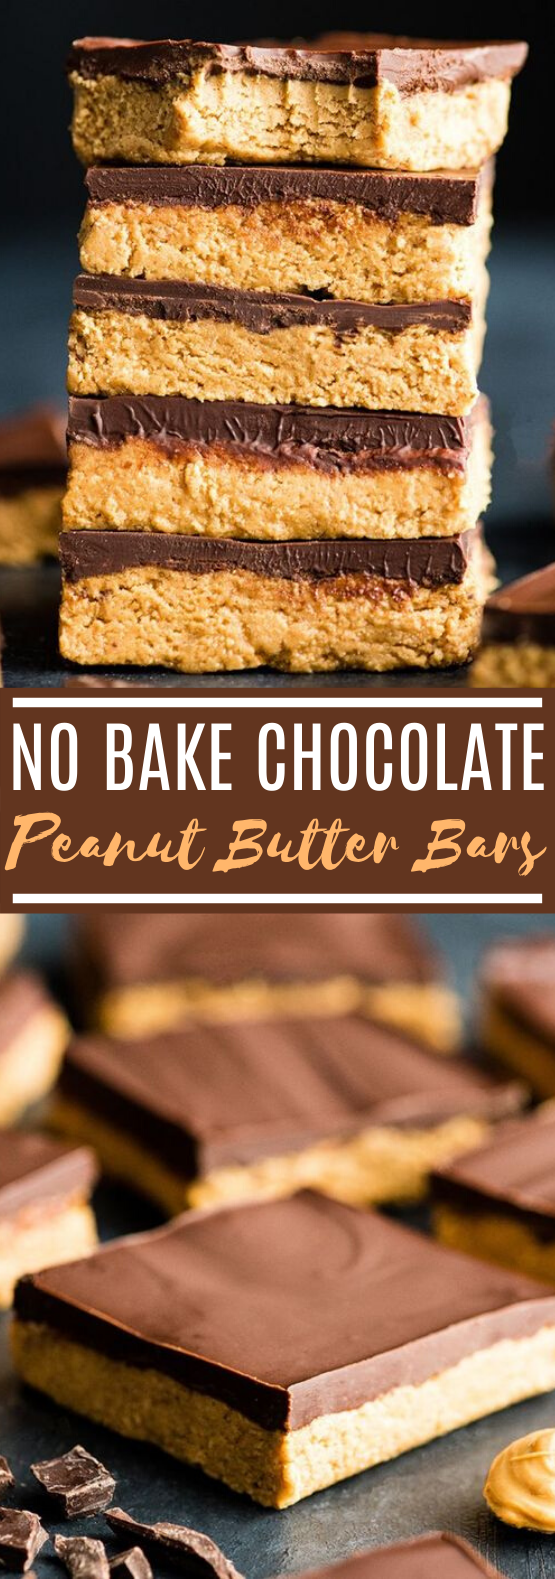 Easy No Bake Peanut Butter Bars #desserts #chocolate #bars #peanutbutter #nobake